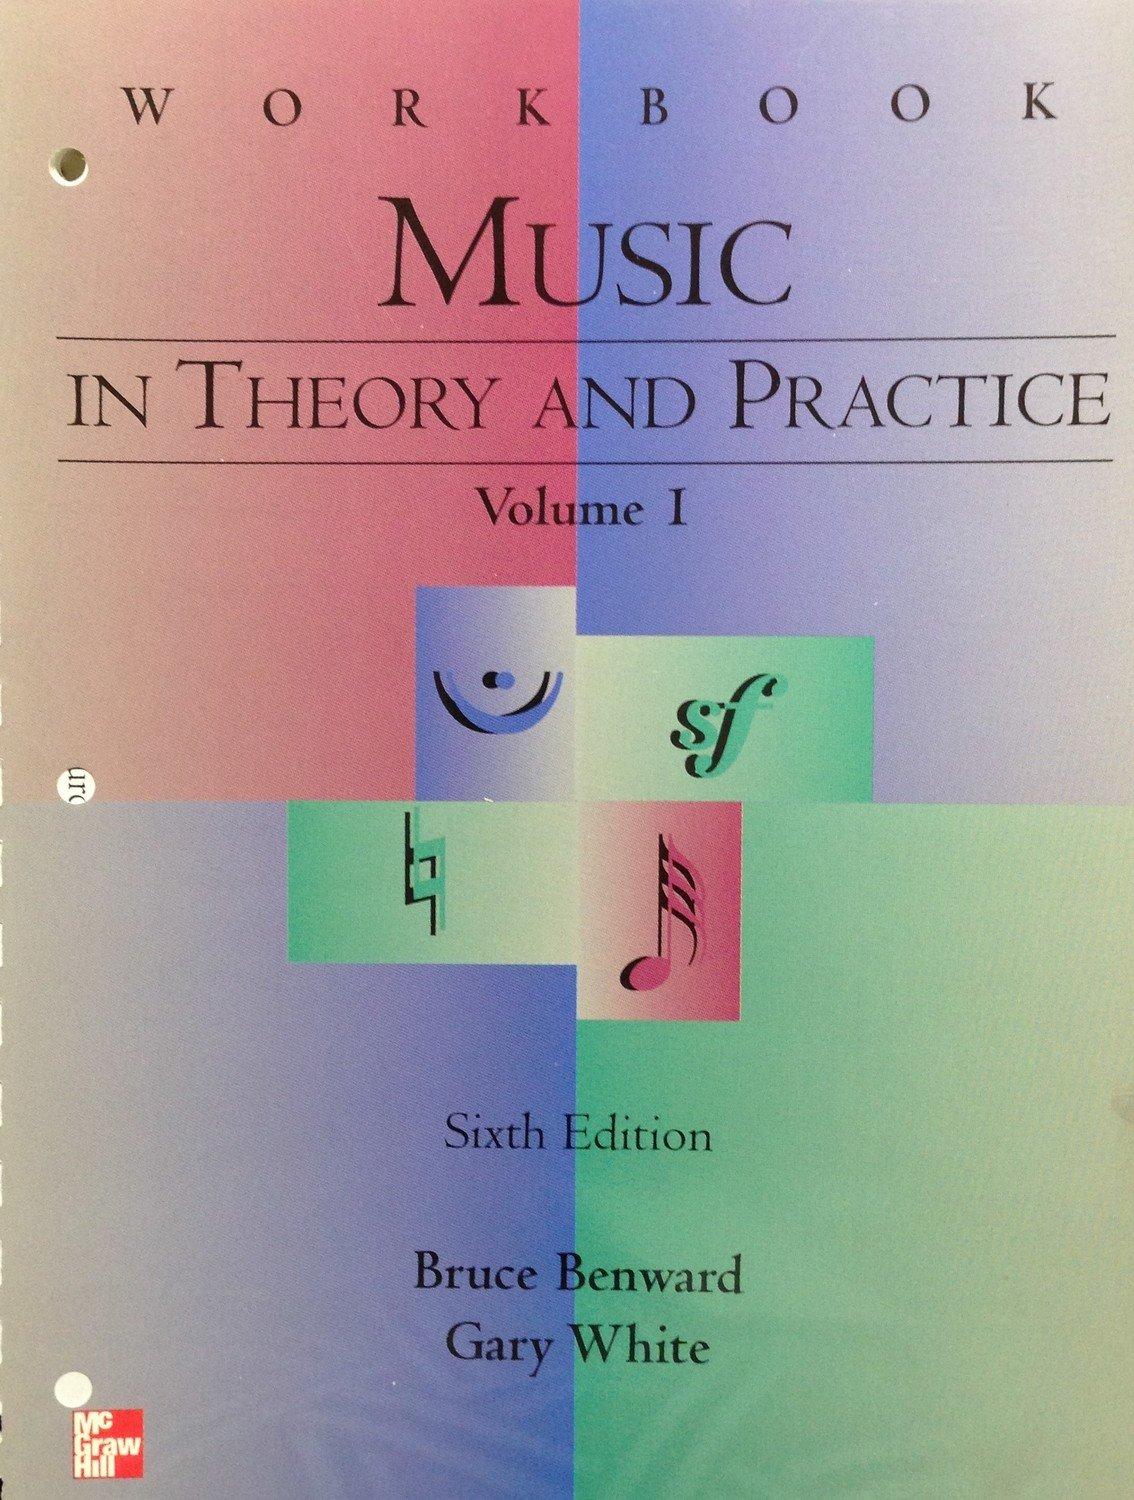 Workbooks music in theory and practice workbook : in Theory and Practice Volume I Workbook: Sixth Edition